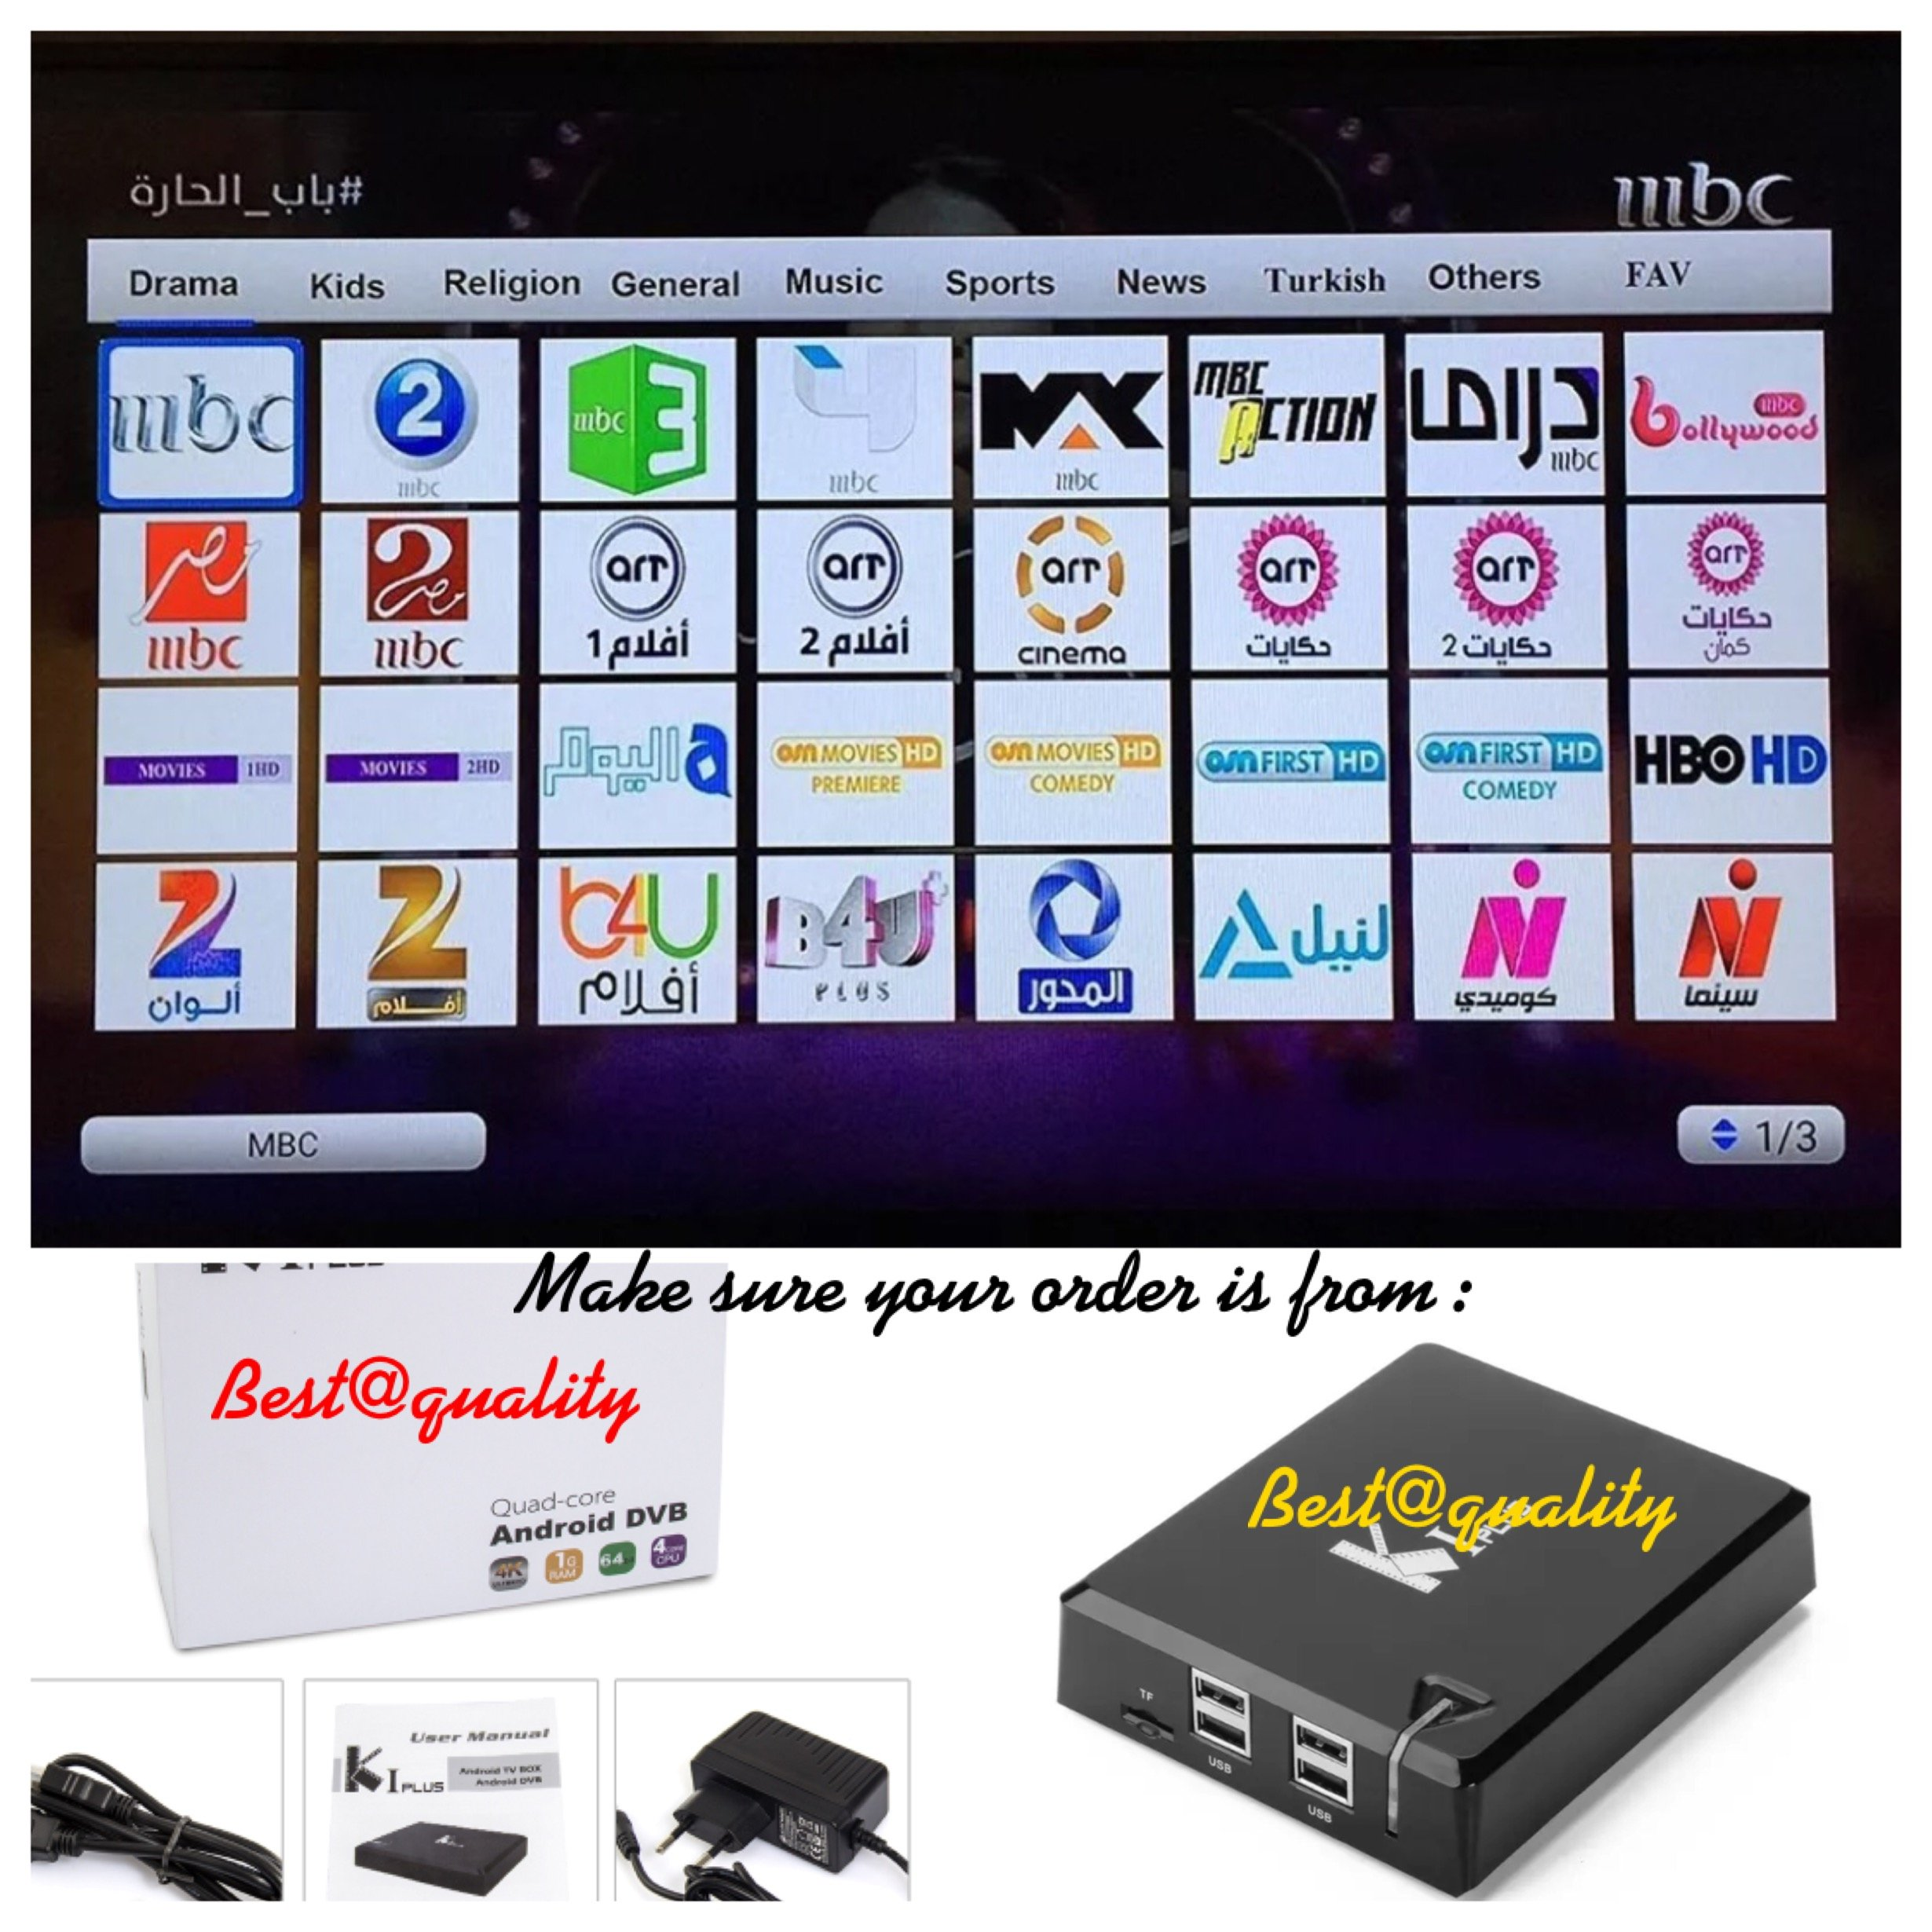 Best Arab IPTV more channels and movies ,2 years service Gold Or Black Box The Programming the same remote control